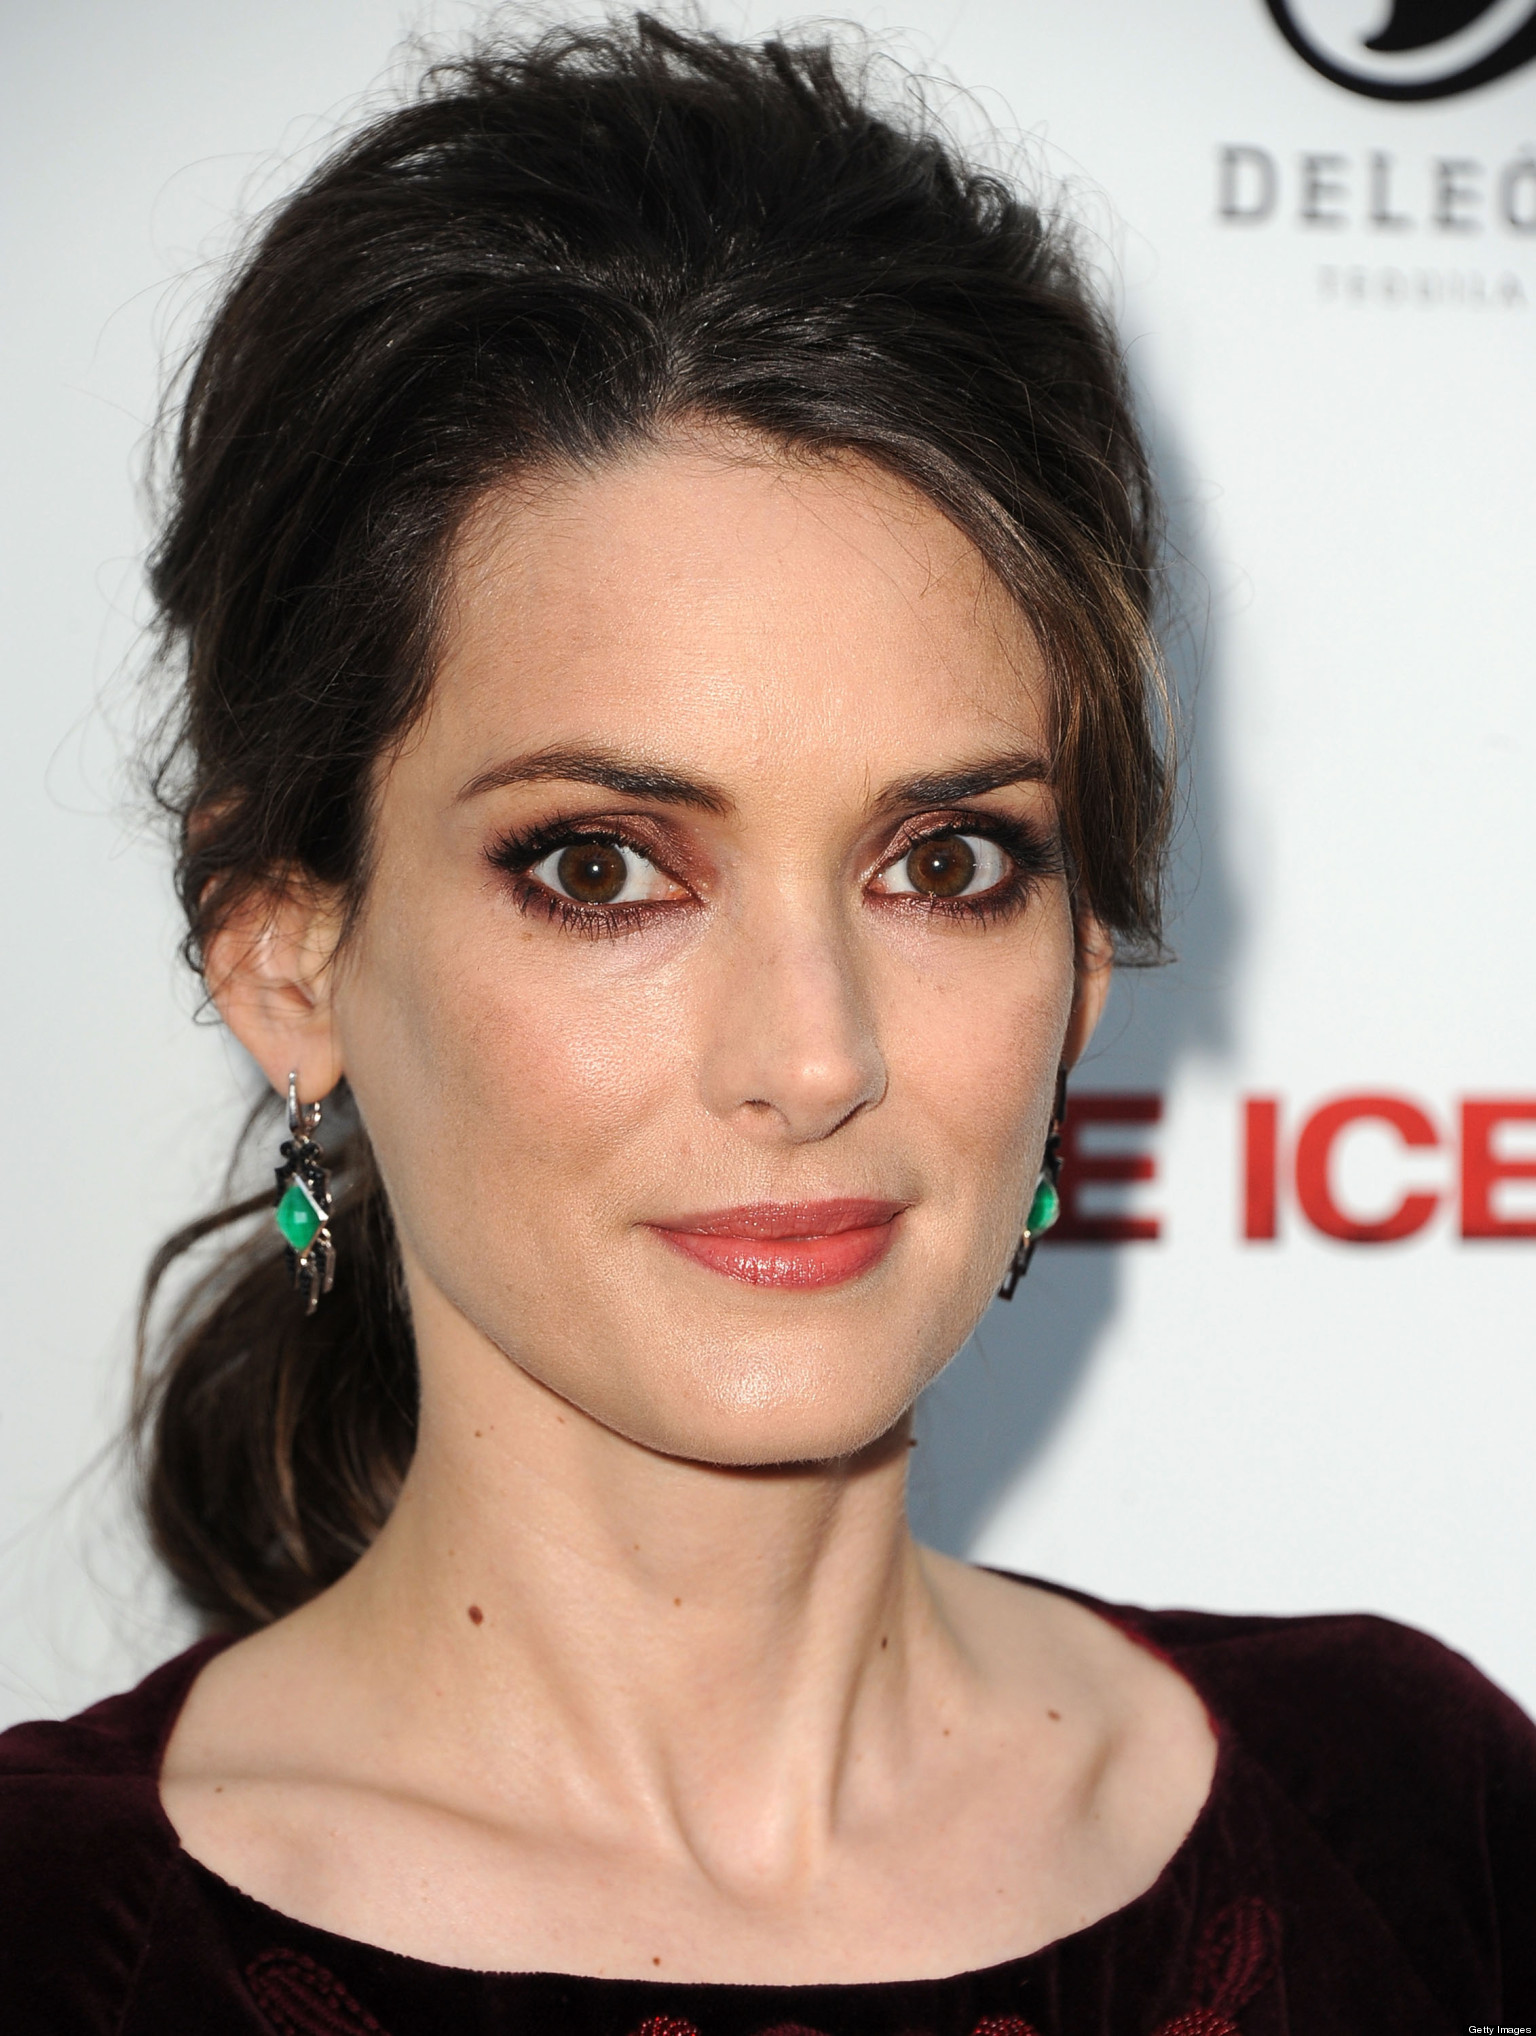 winona ryder - photo #44